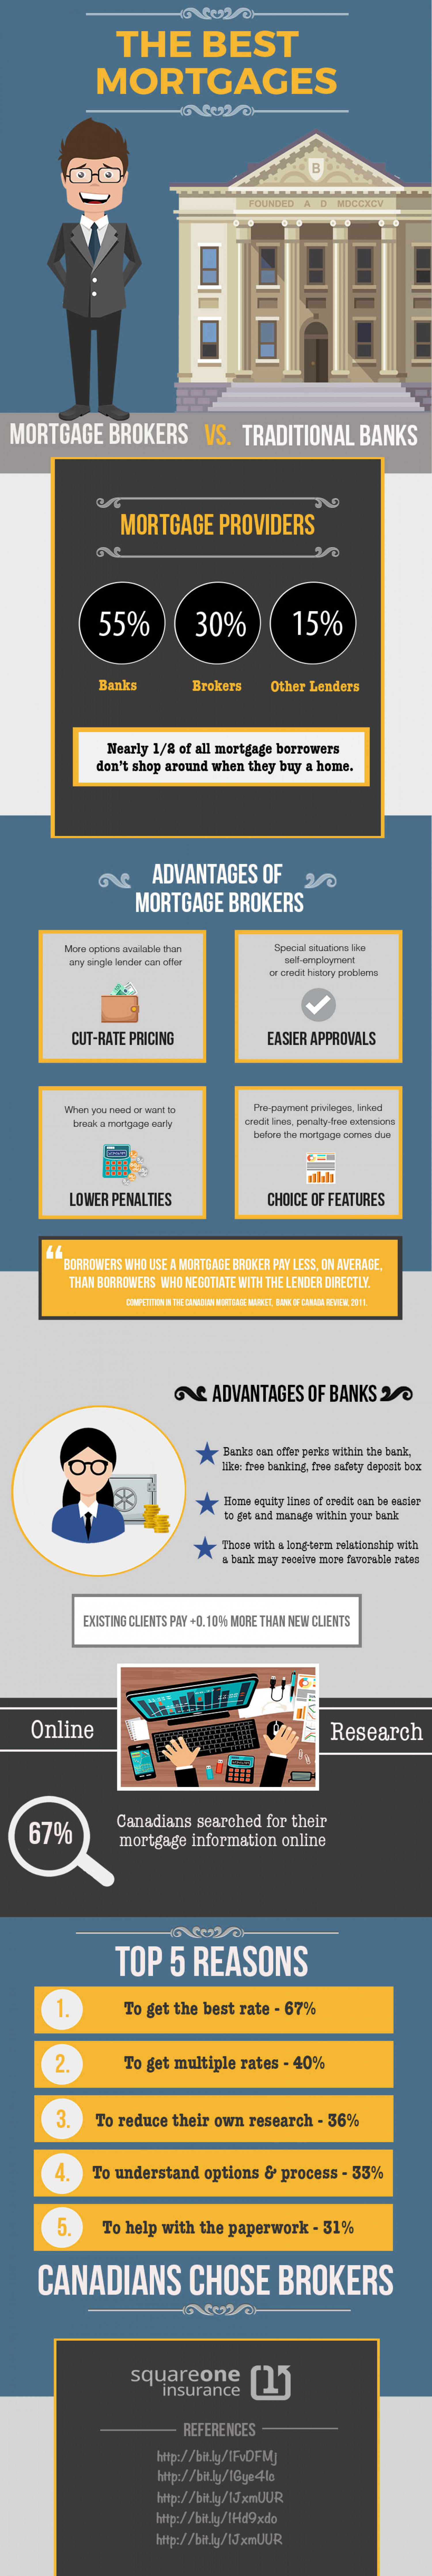 Where Will You Get the Best Rates – Your Mortgage Broker or Your Bank? Infographic